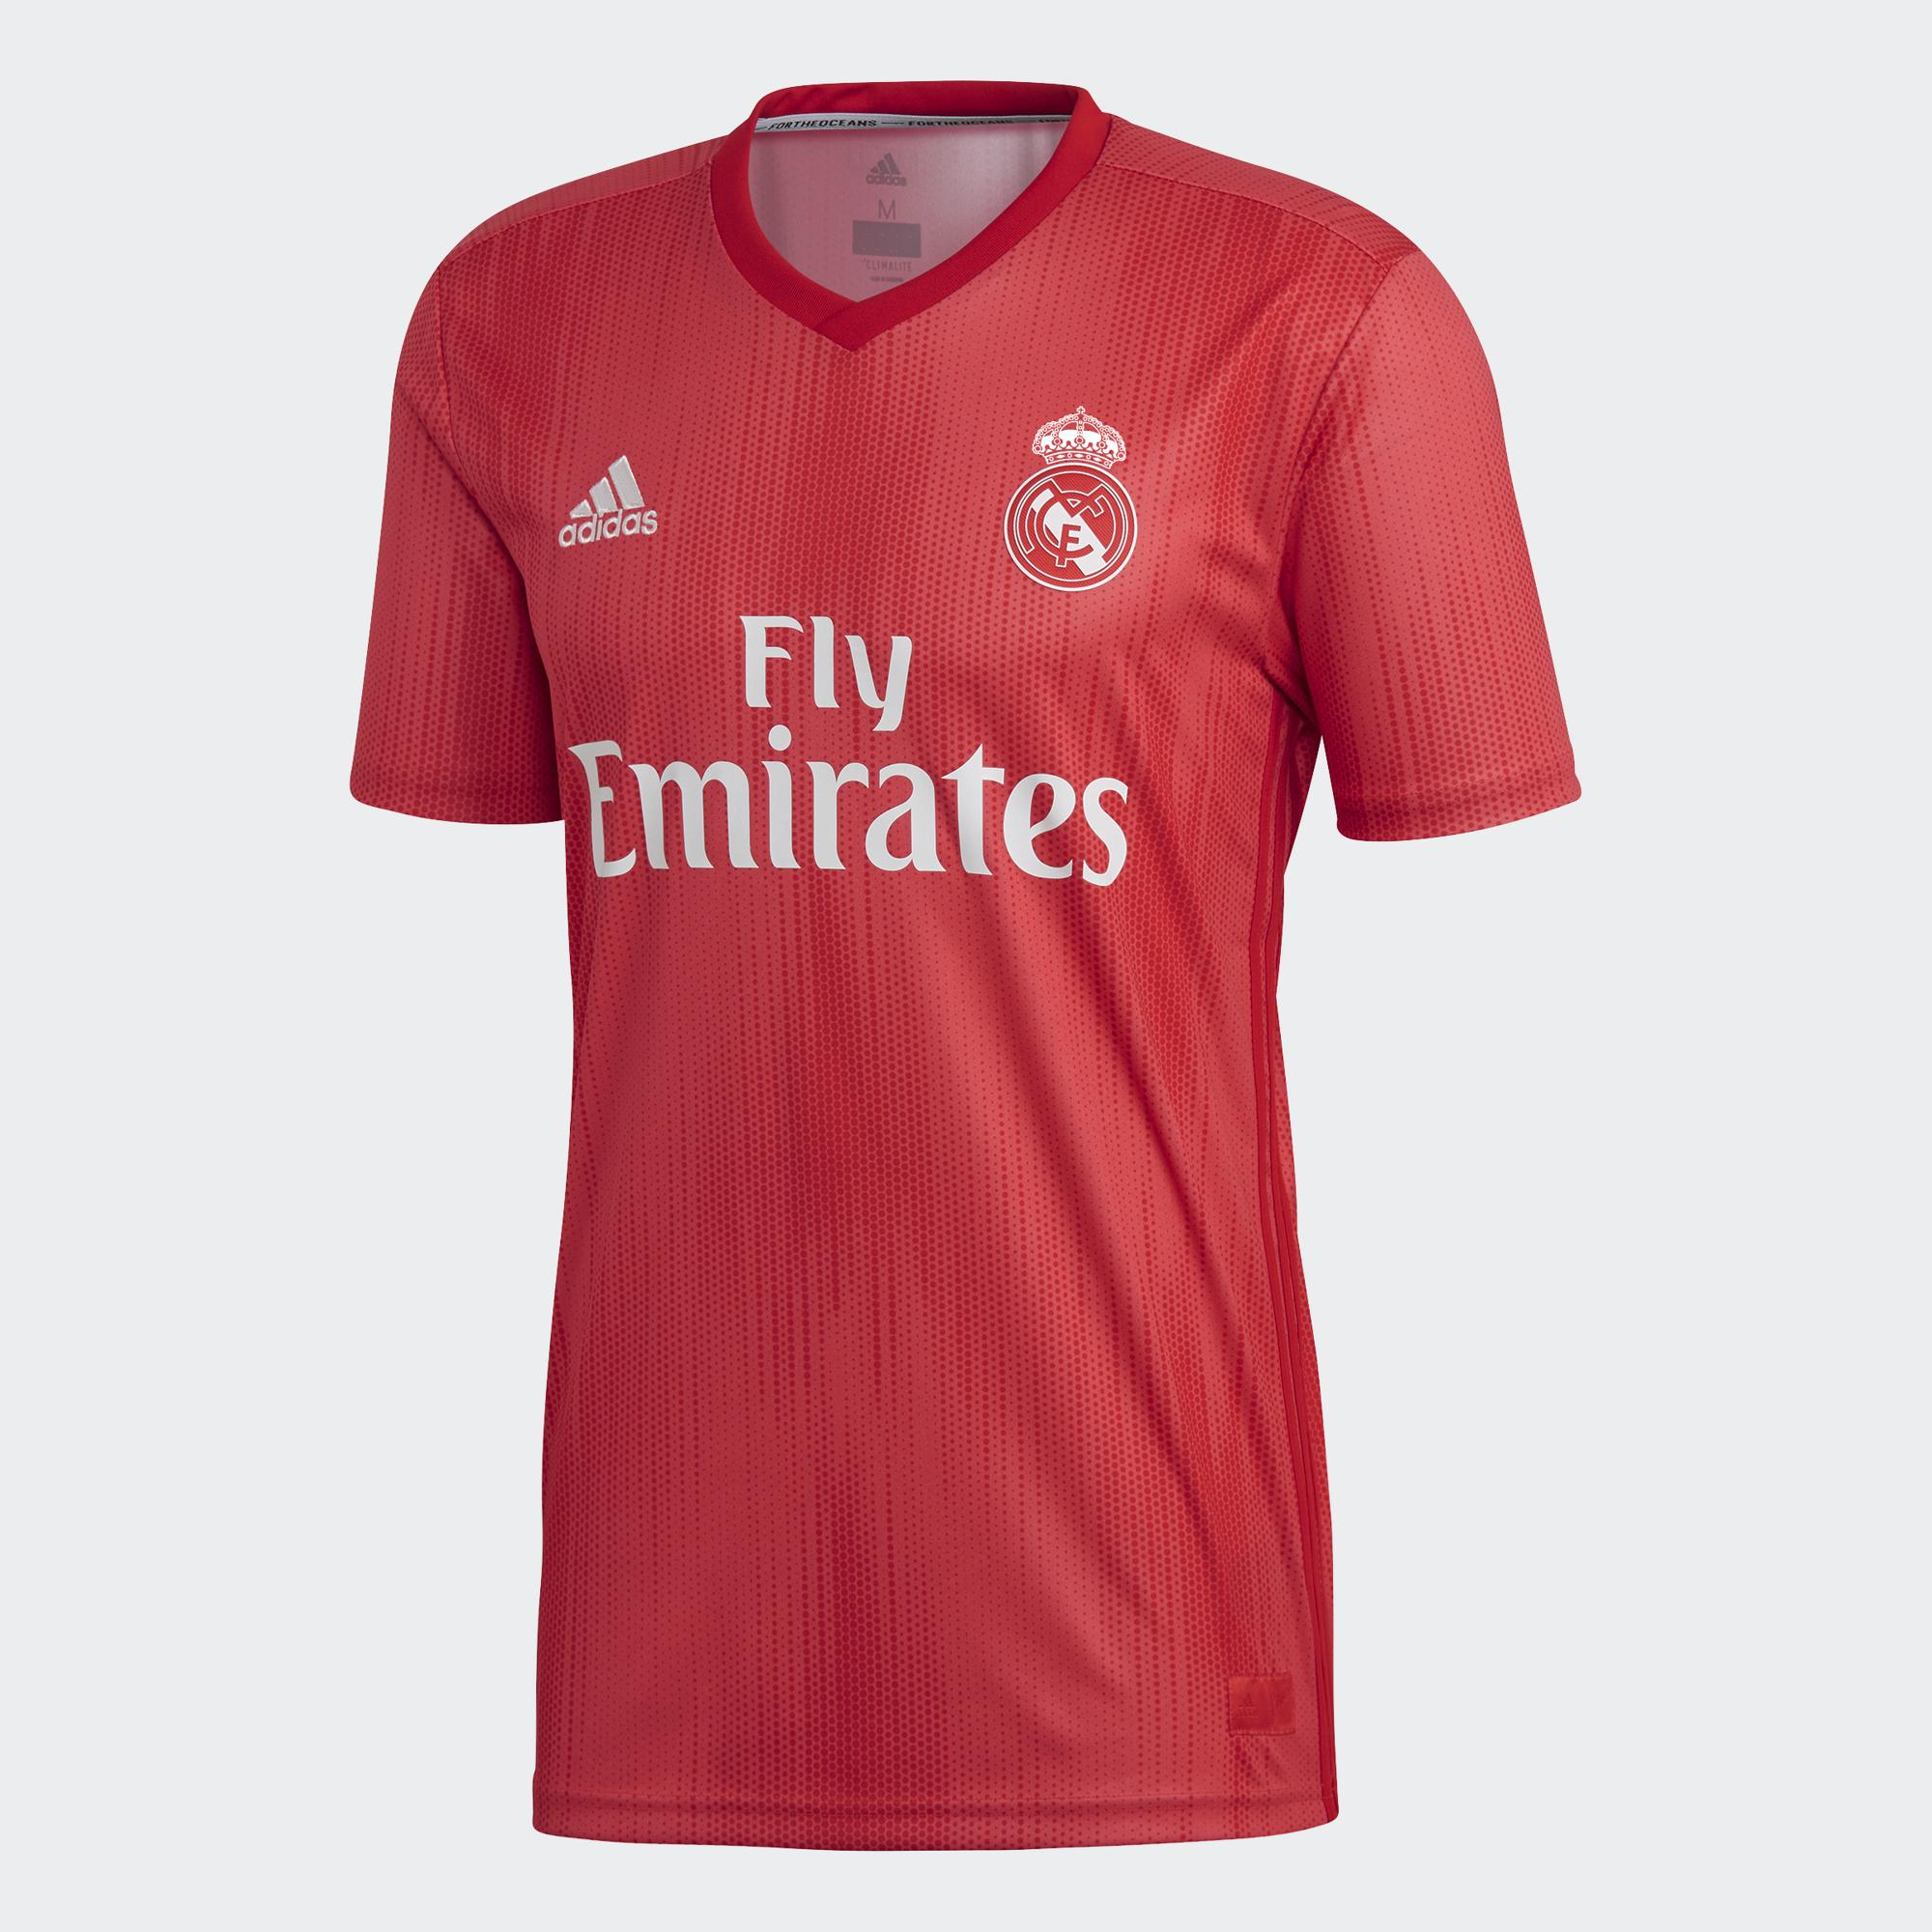 Adidas Jersey Third Real Madrid   18/19